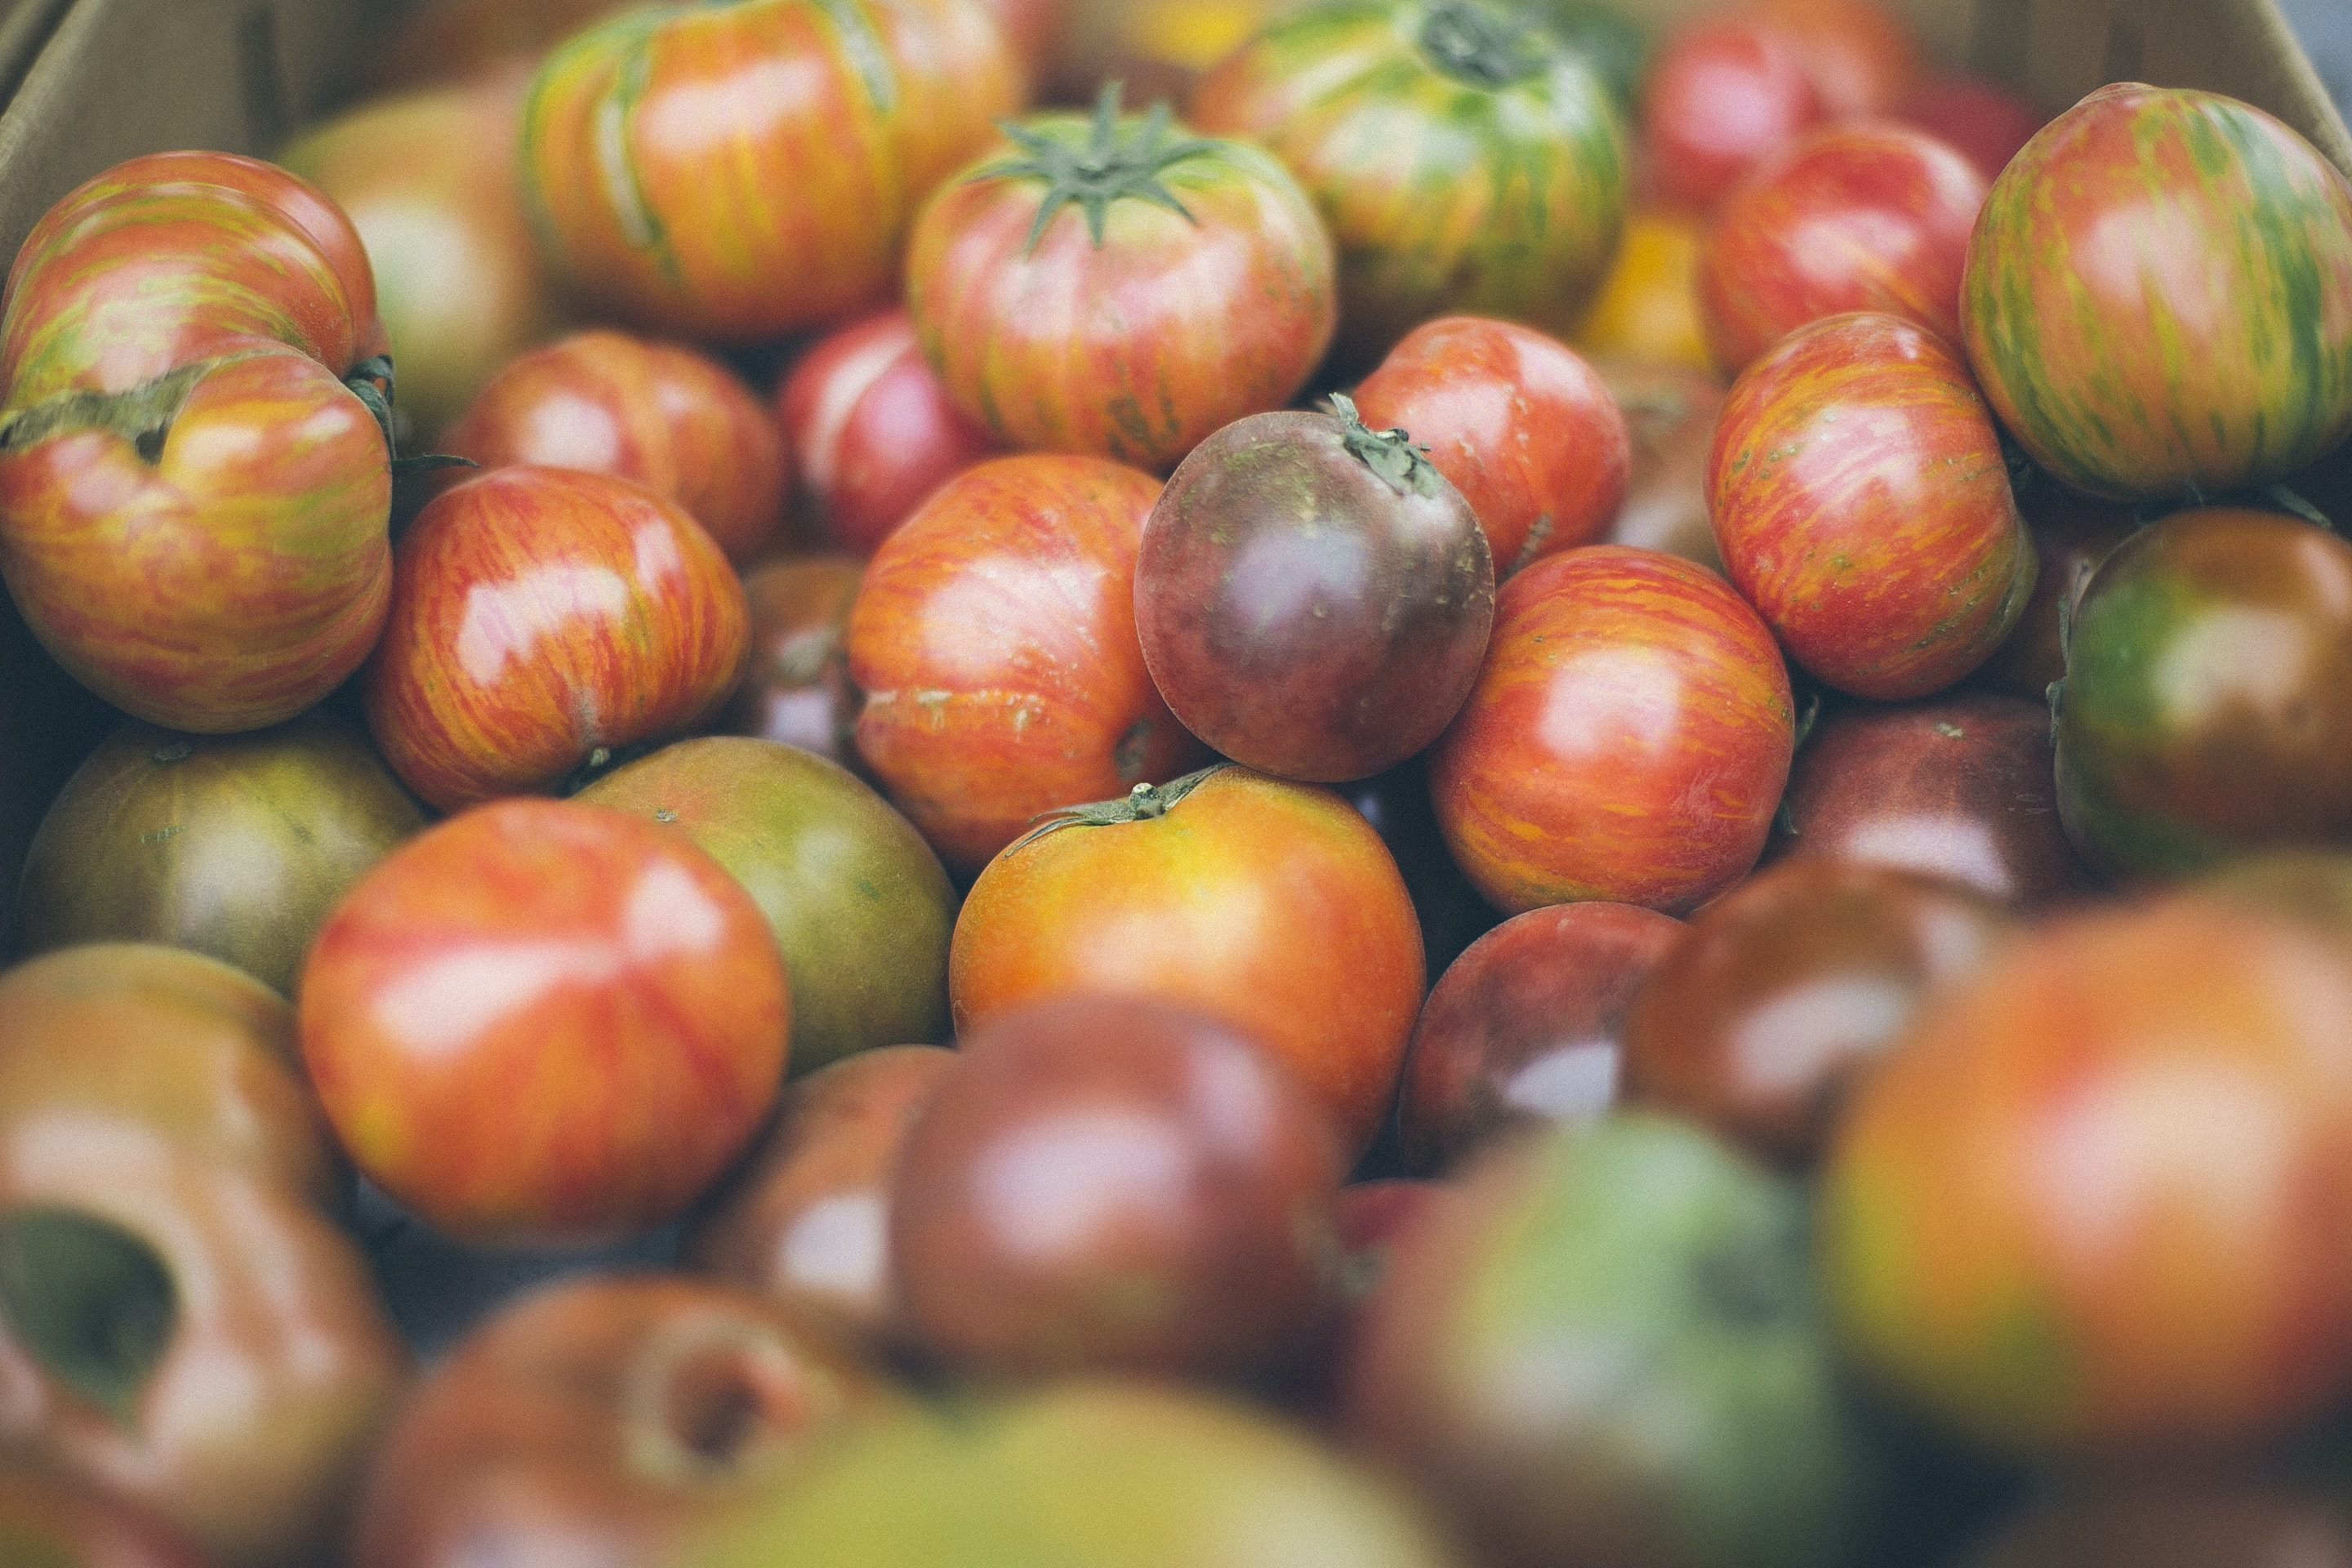 Box of heirloom tomatoes at a farmer's market